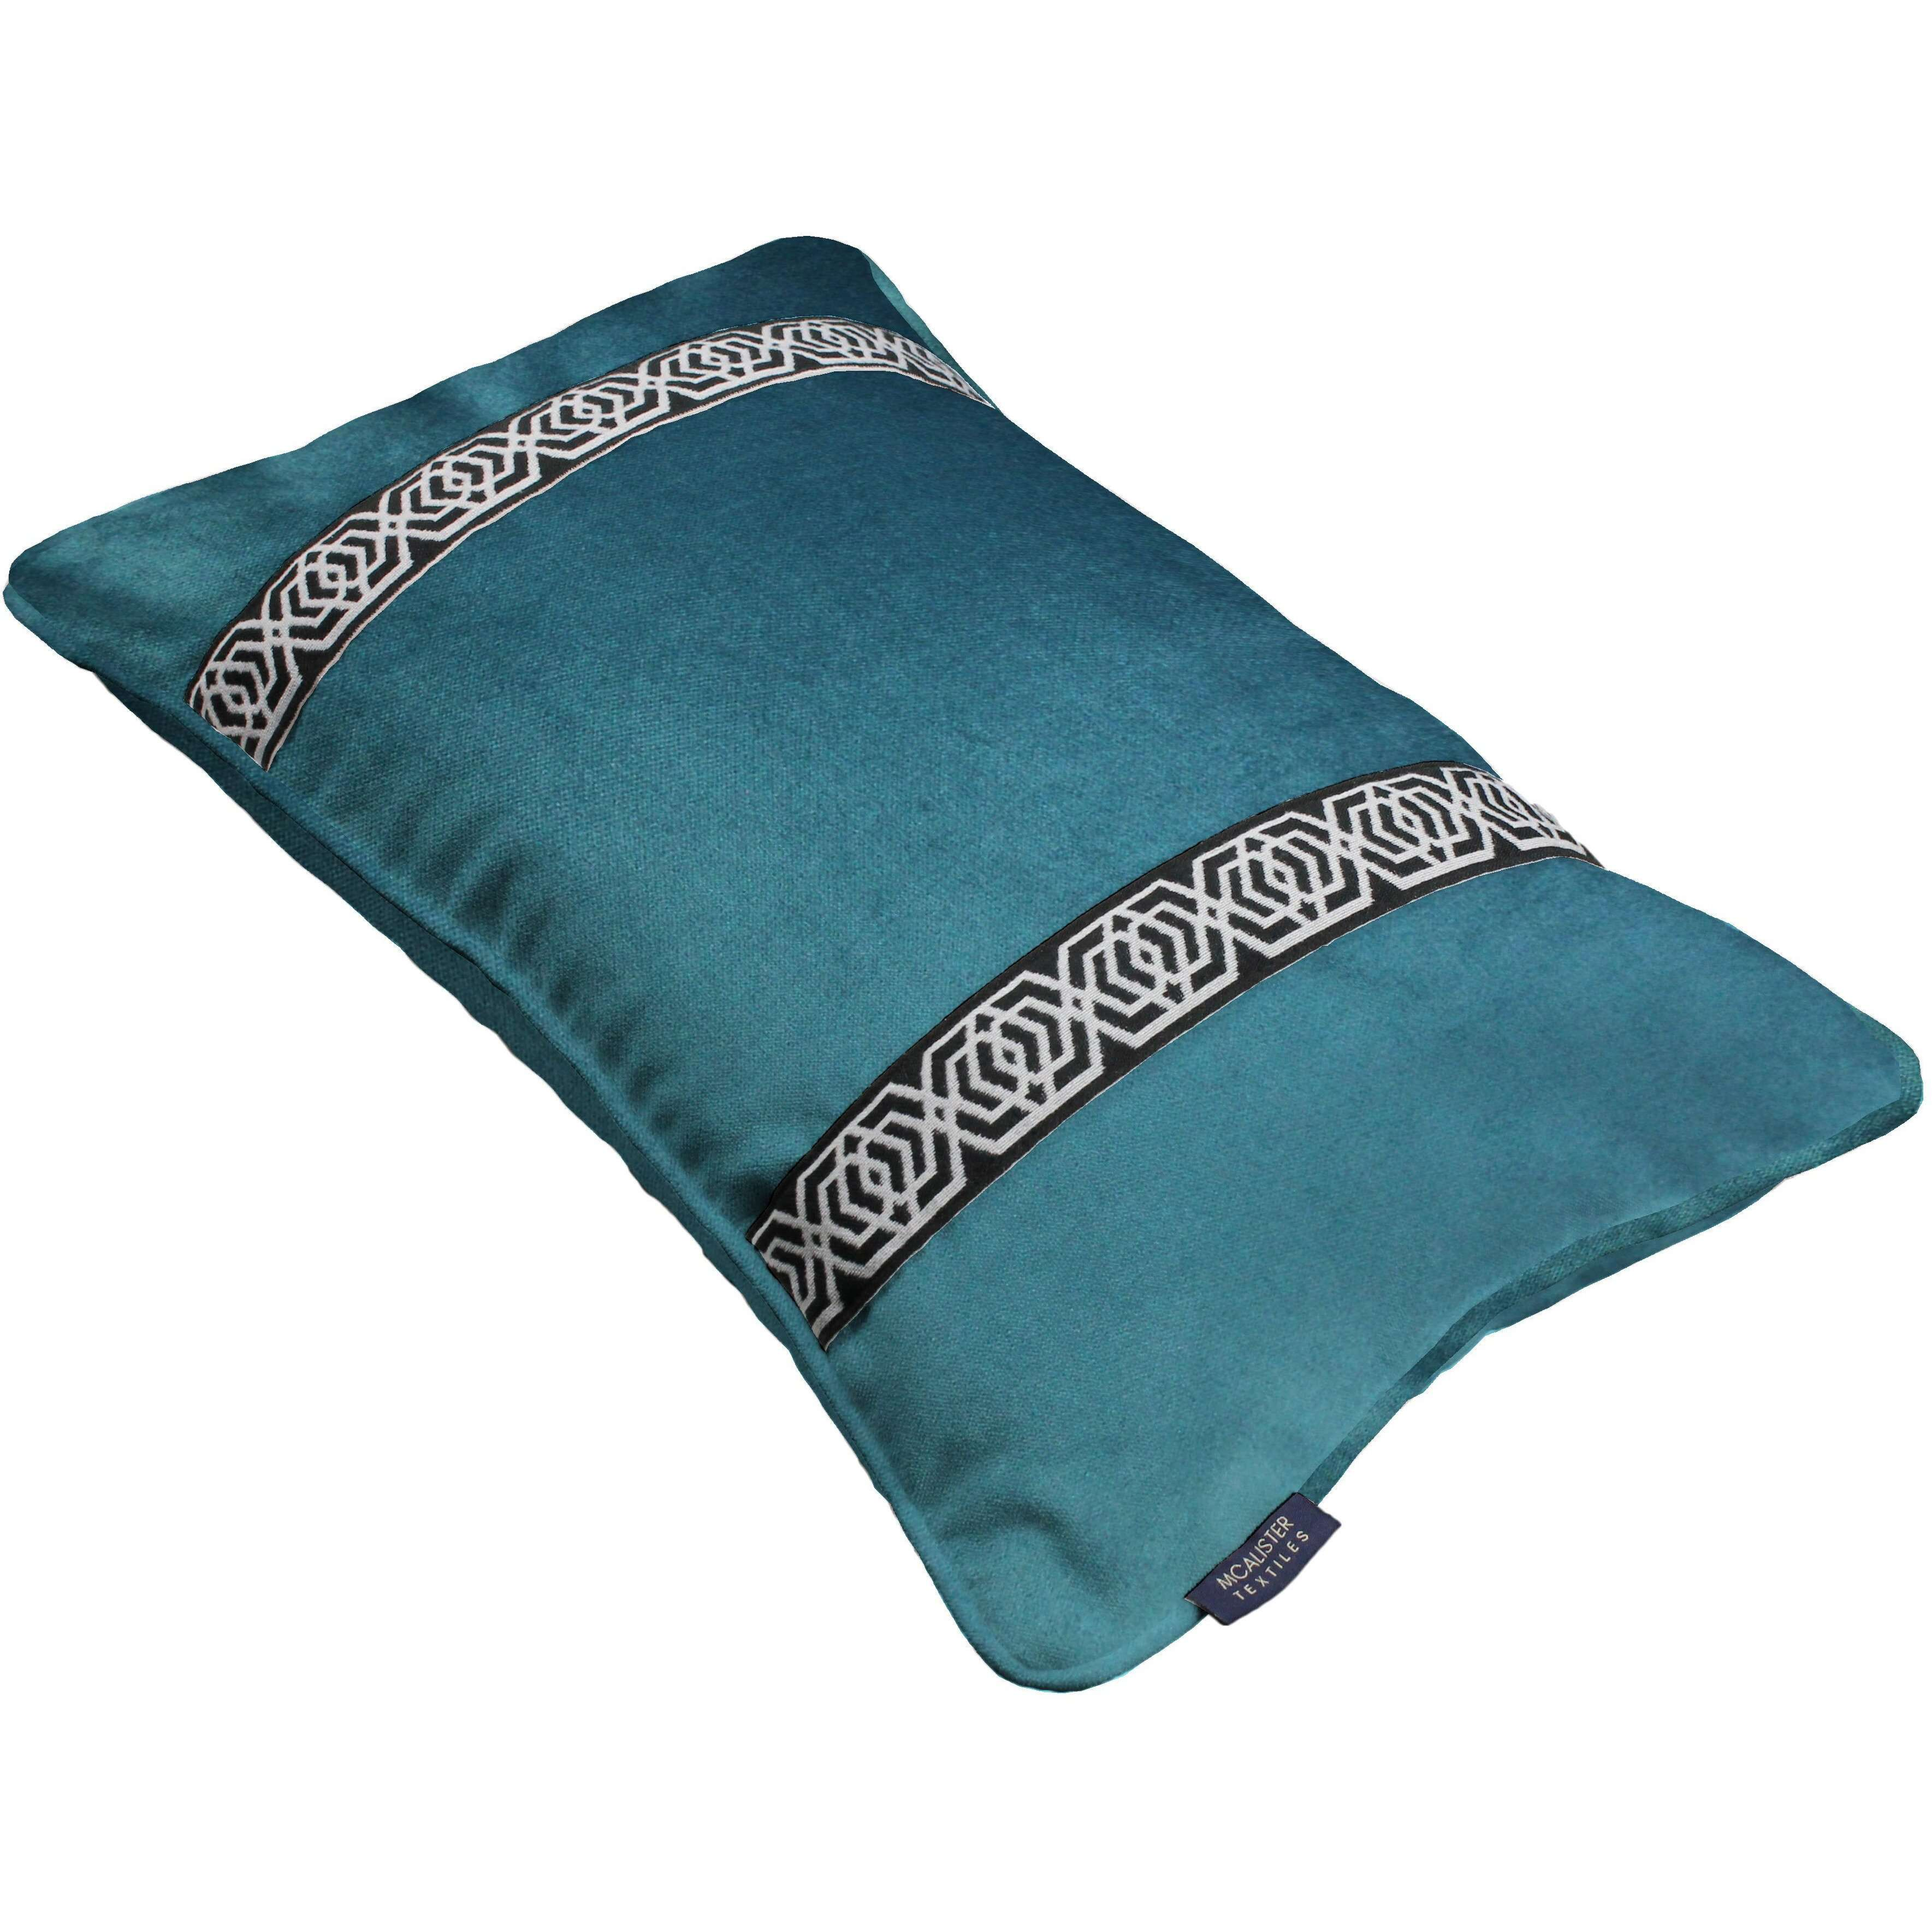 McAlister Textiles Coba Striped Blue Teal Velvet Cushion Cushions and Covers